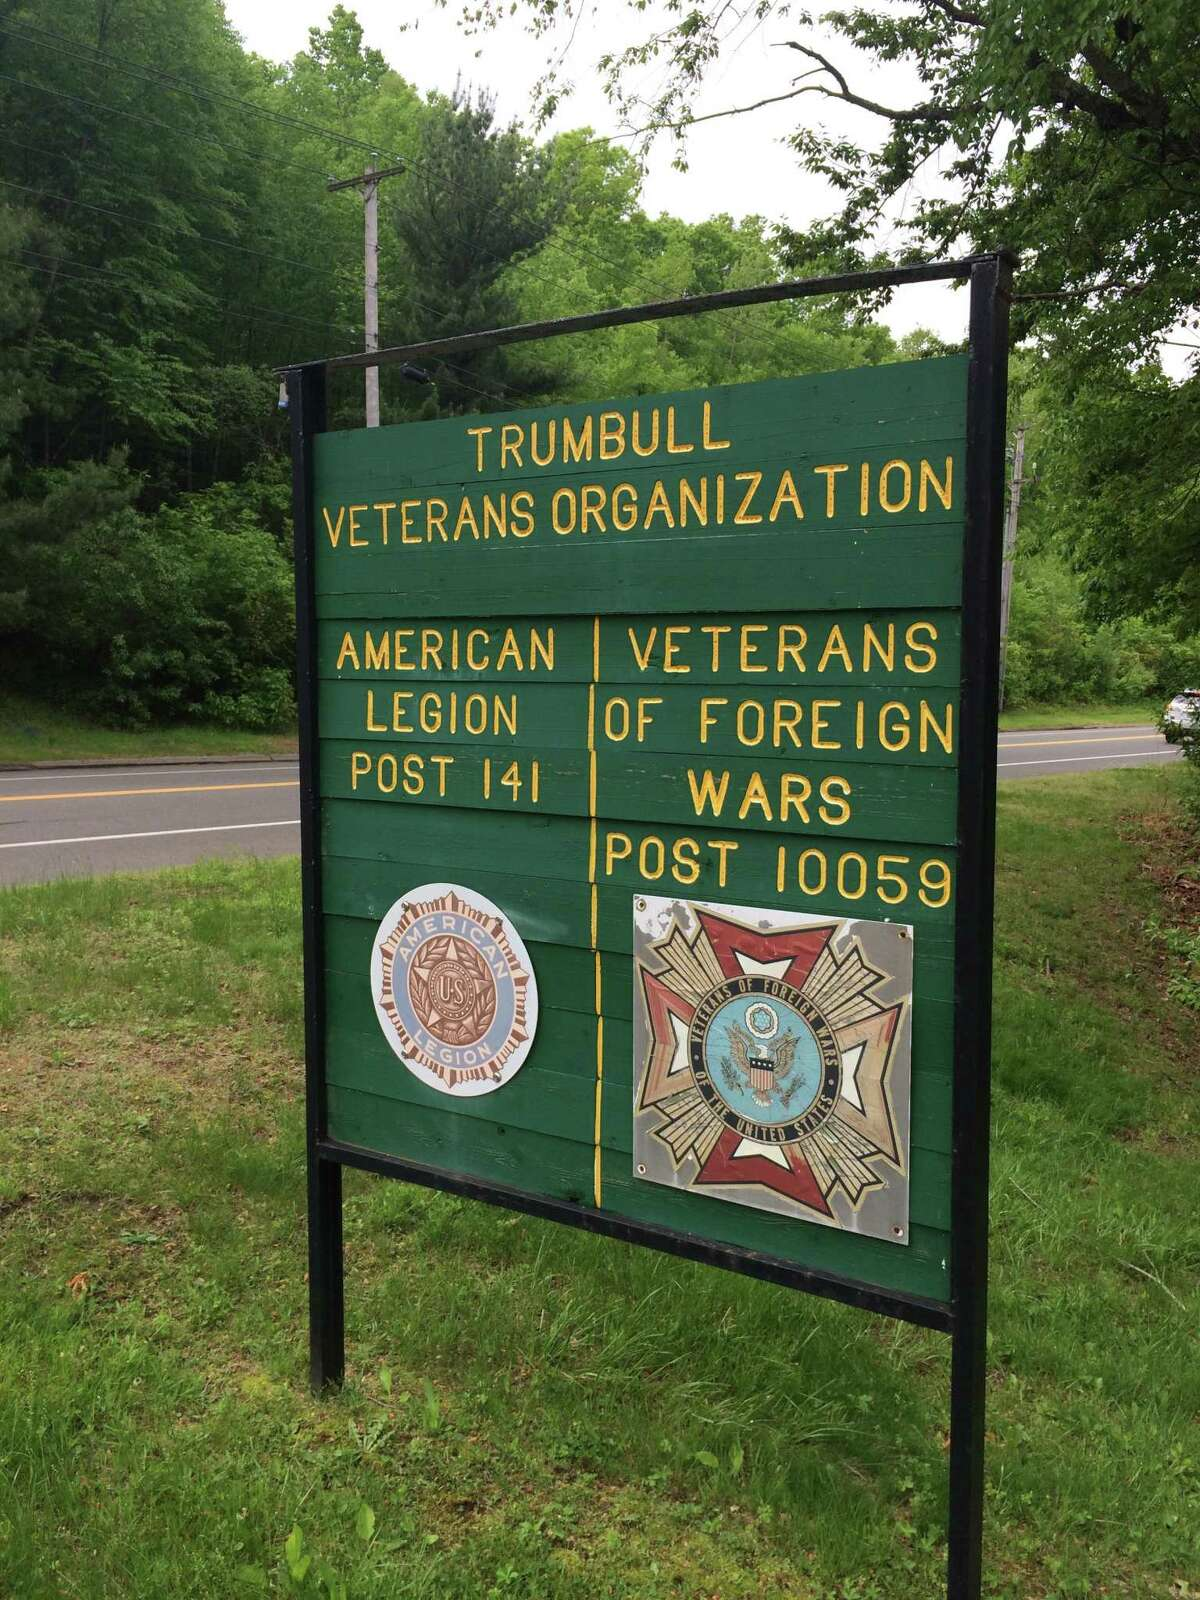 The town's veterans groups hope to build a new facility by 2021. The current building was built in 1940 and condemned in 2017 due to unrepairable structural damage.